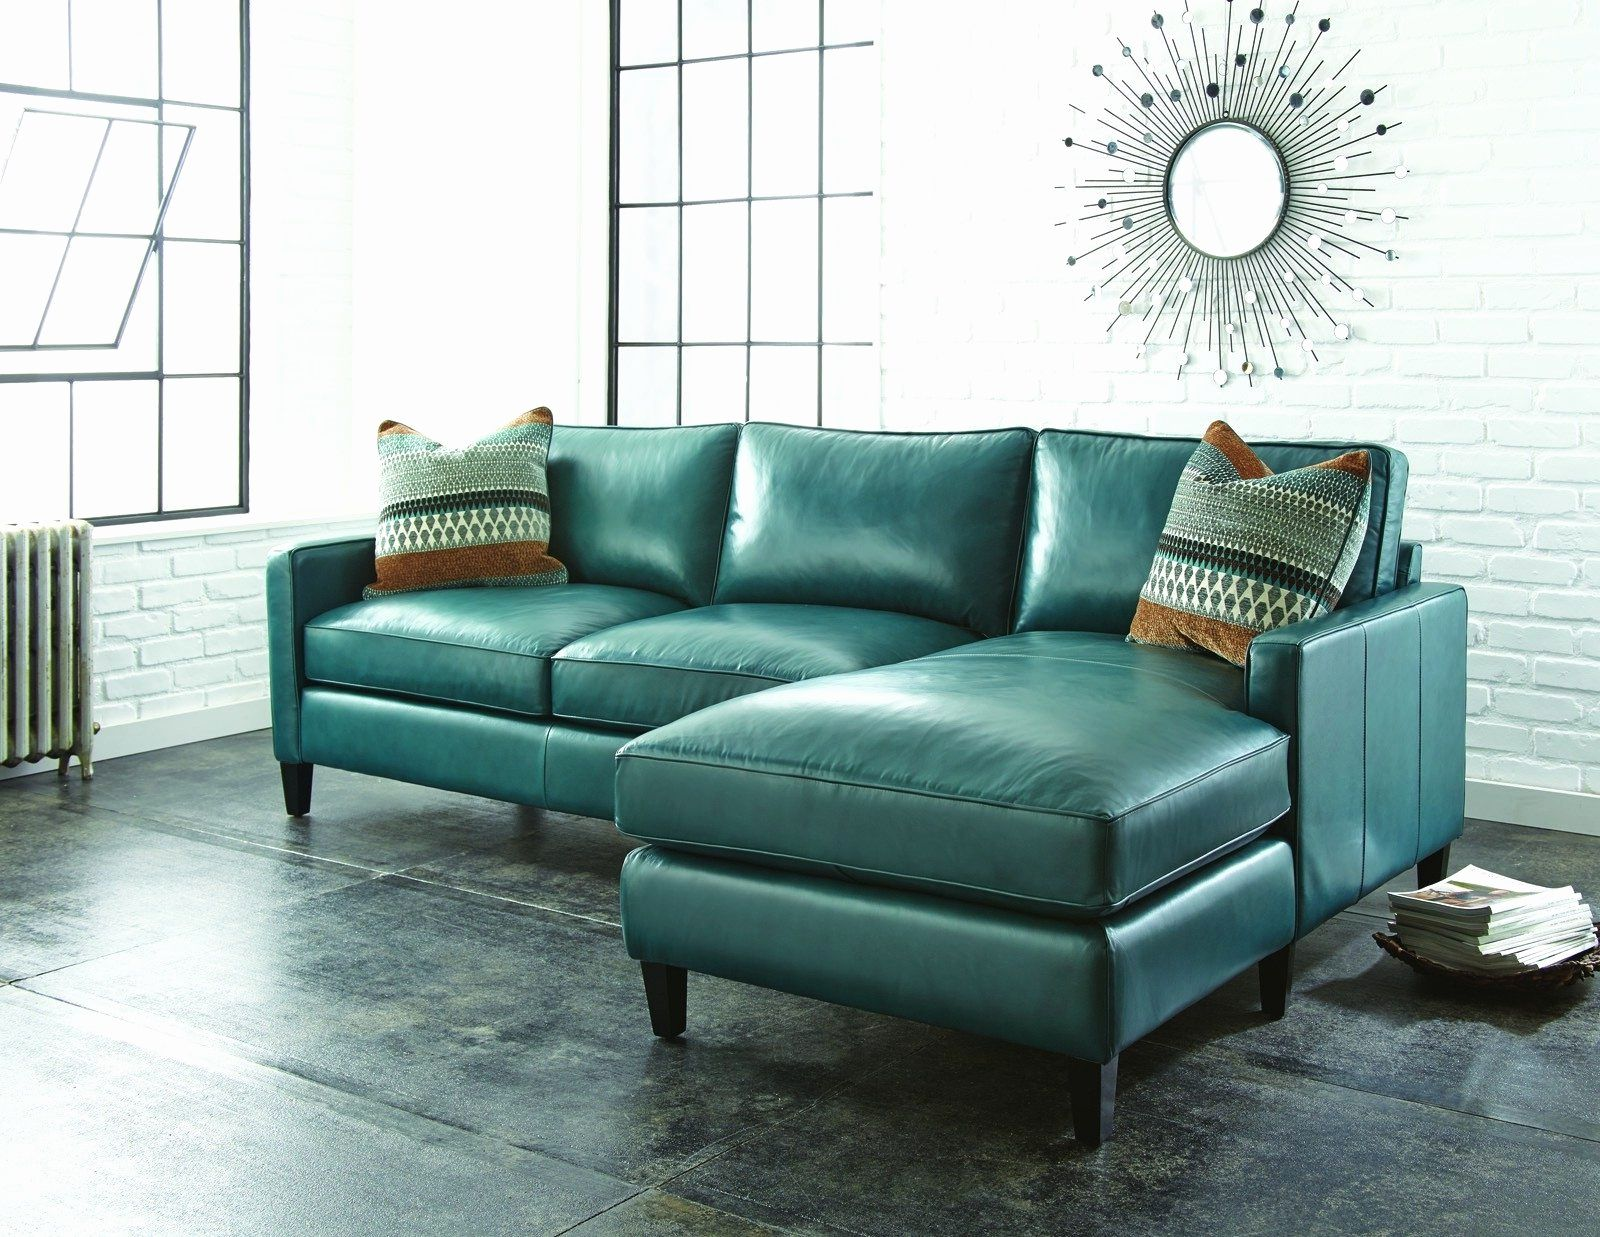 Best Of Teal Sofa Set Shot Unique Mesmerizing Navy Blue Leather Furniture Cobalt On Light